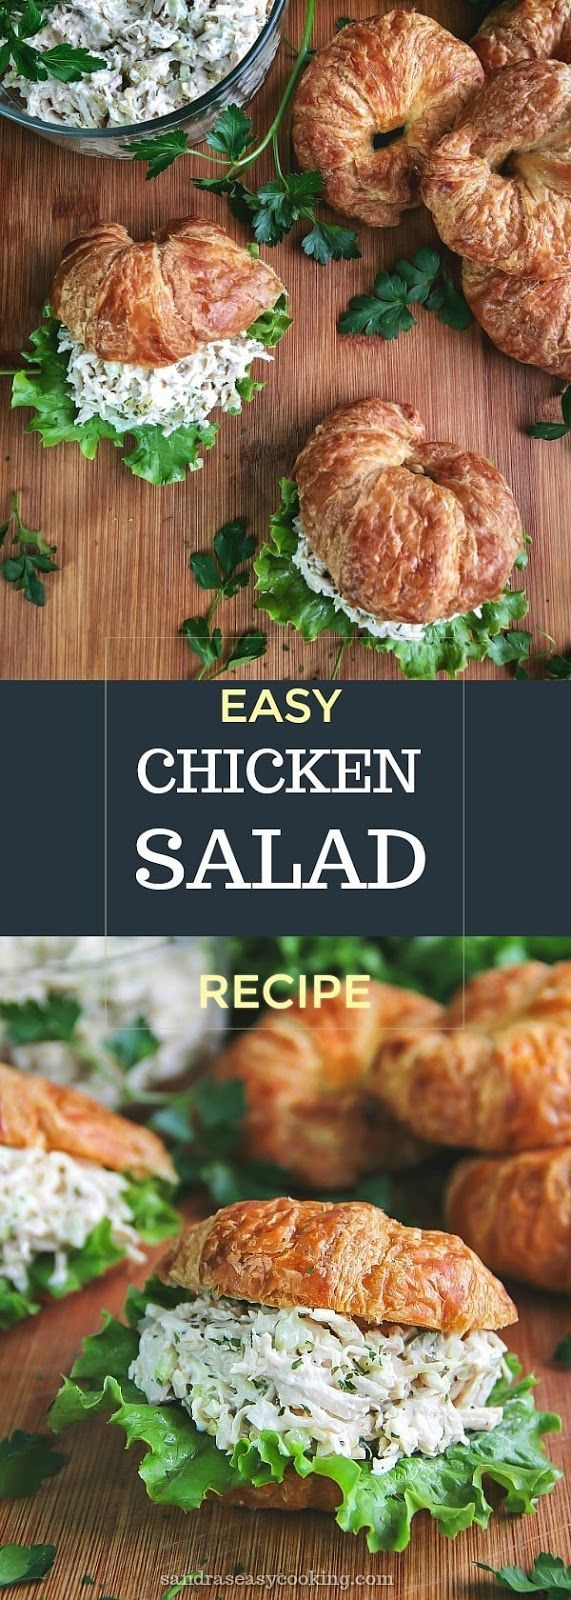 Easy Chicken Salad Recipe - Delicious, simple! Will try this recipe, but will occasionally start serving my chicken salad on croissants w/ lettuce!